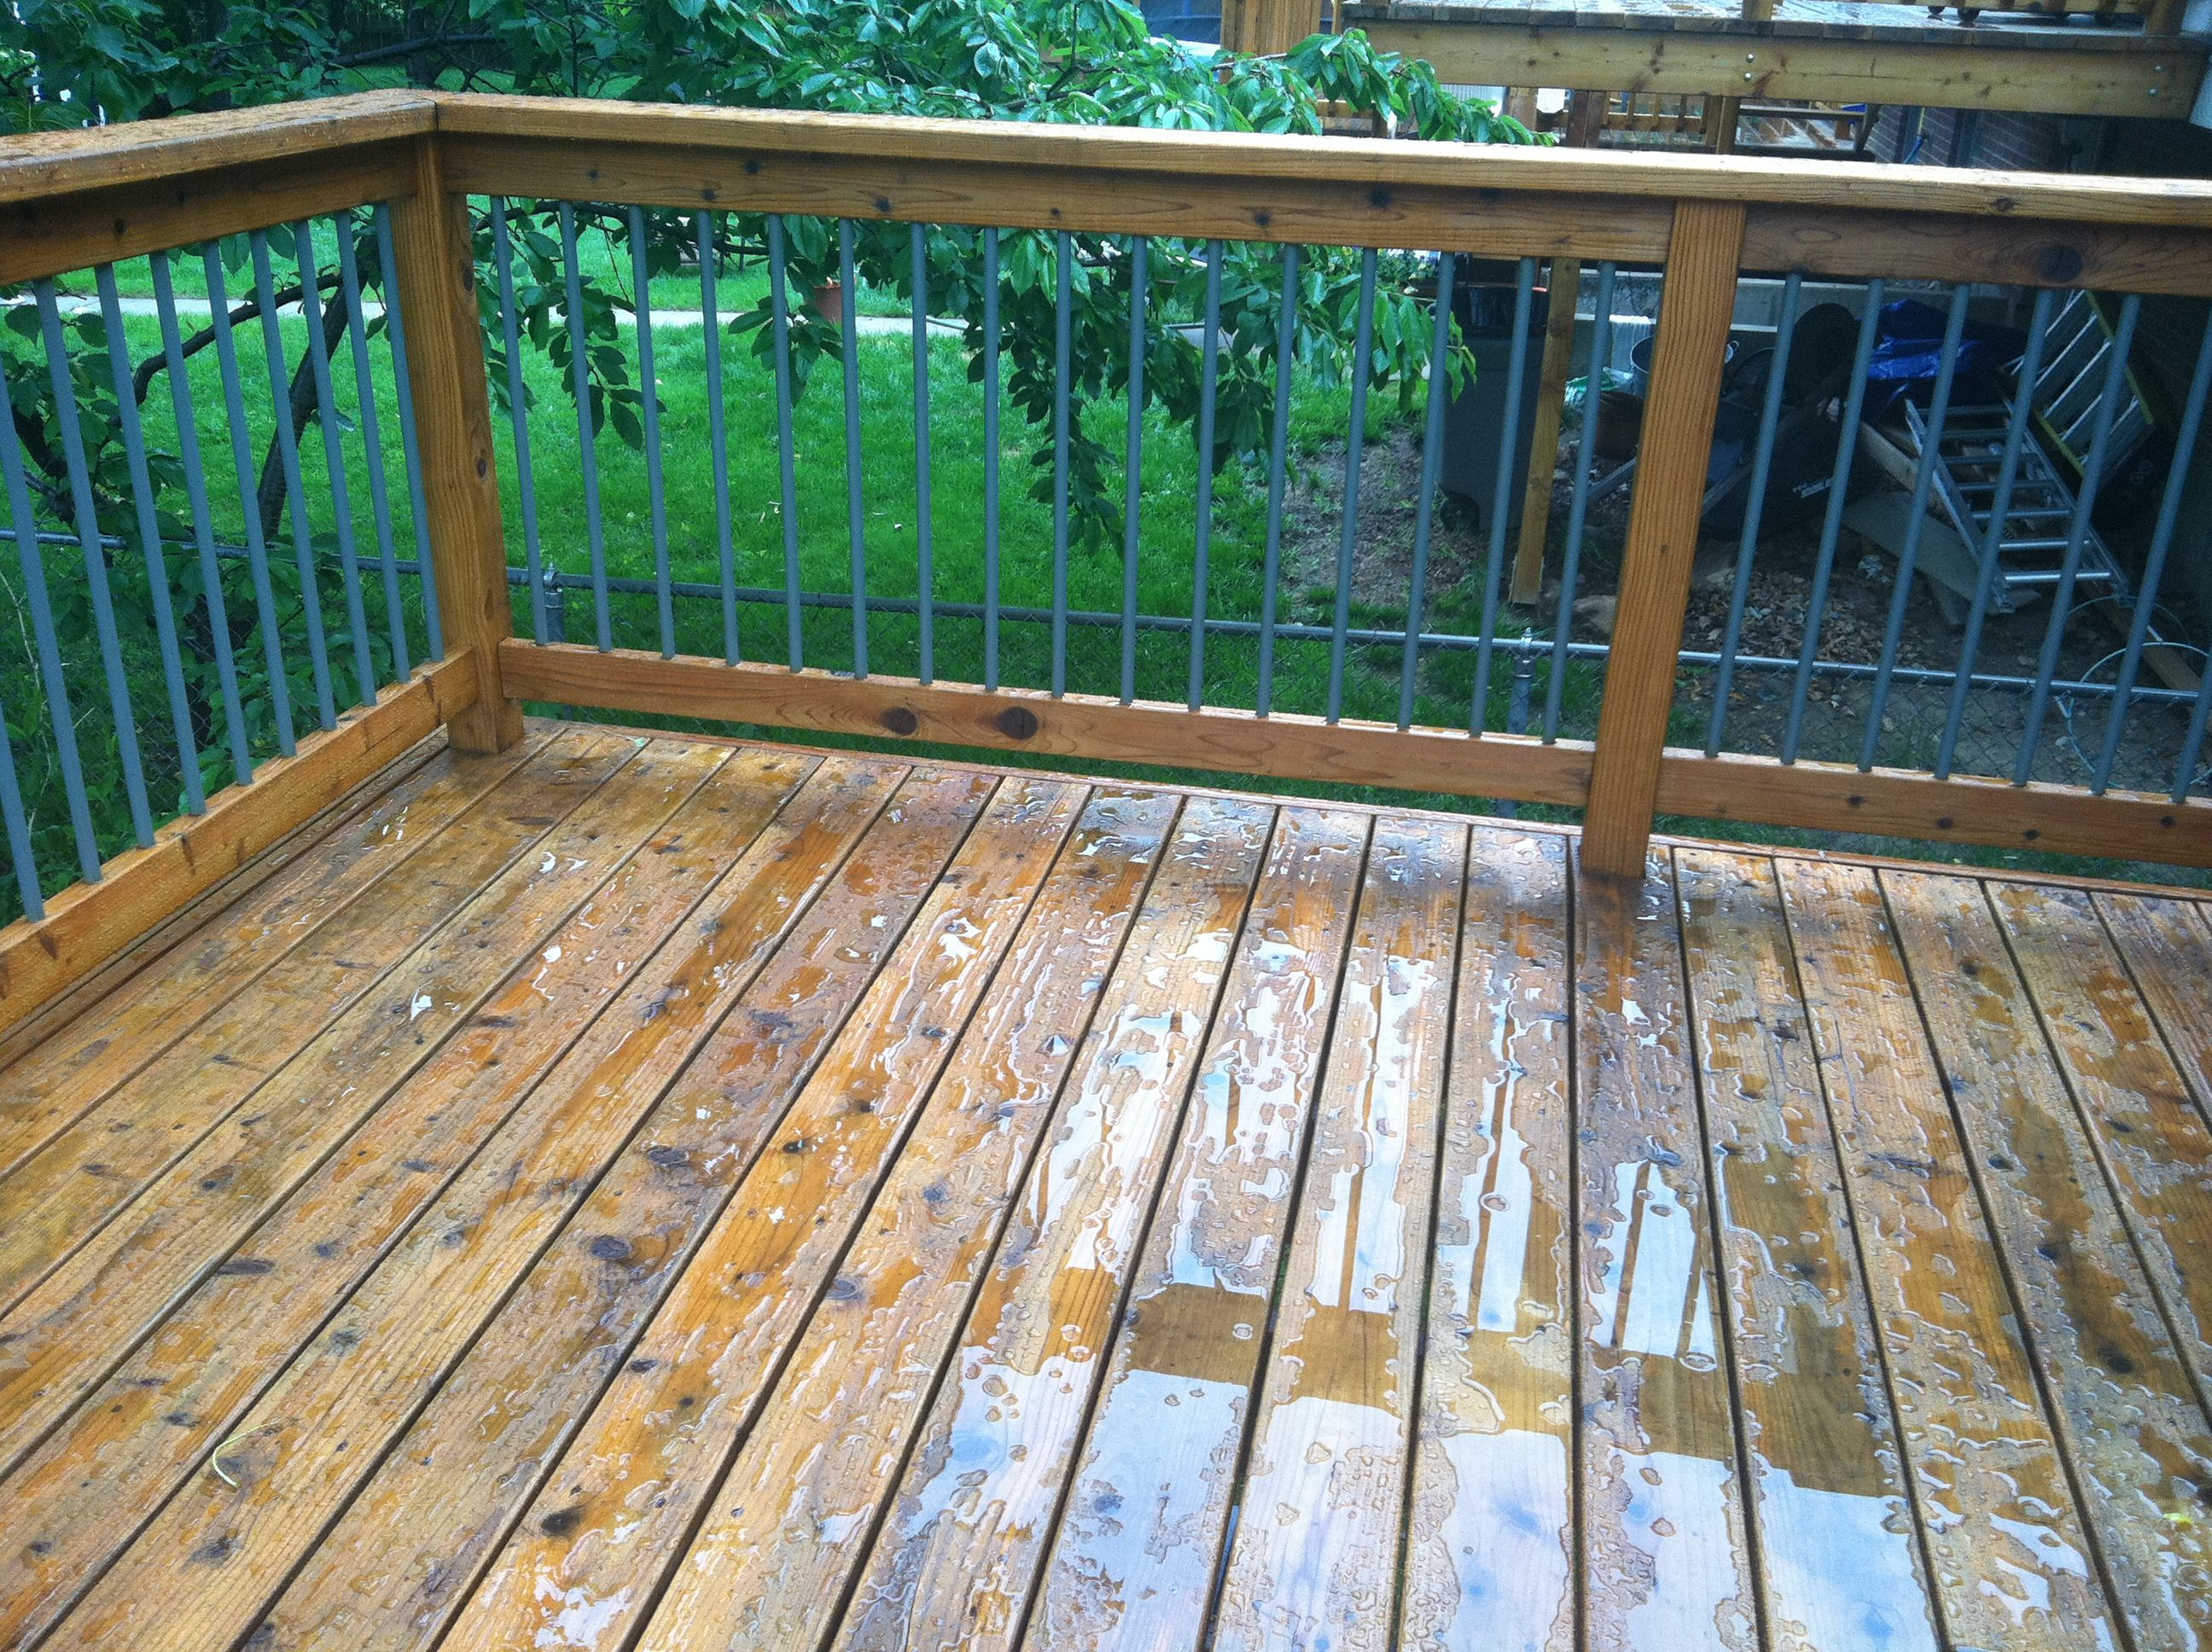 Cabot Deck Stain In Wood Toned Cedar After A Rain Storm Staining Deck Deck Stain Colors Deck Paint Colors